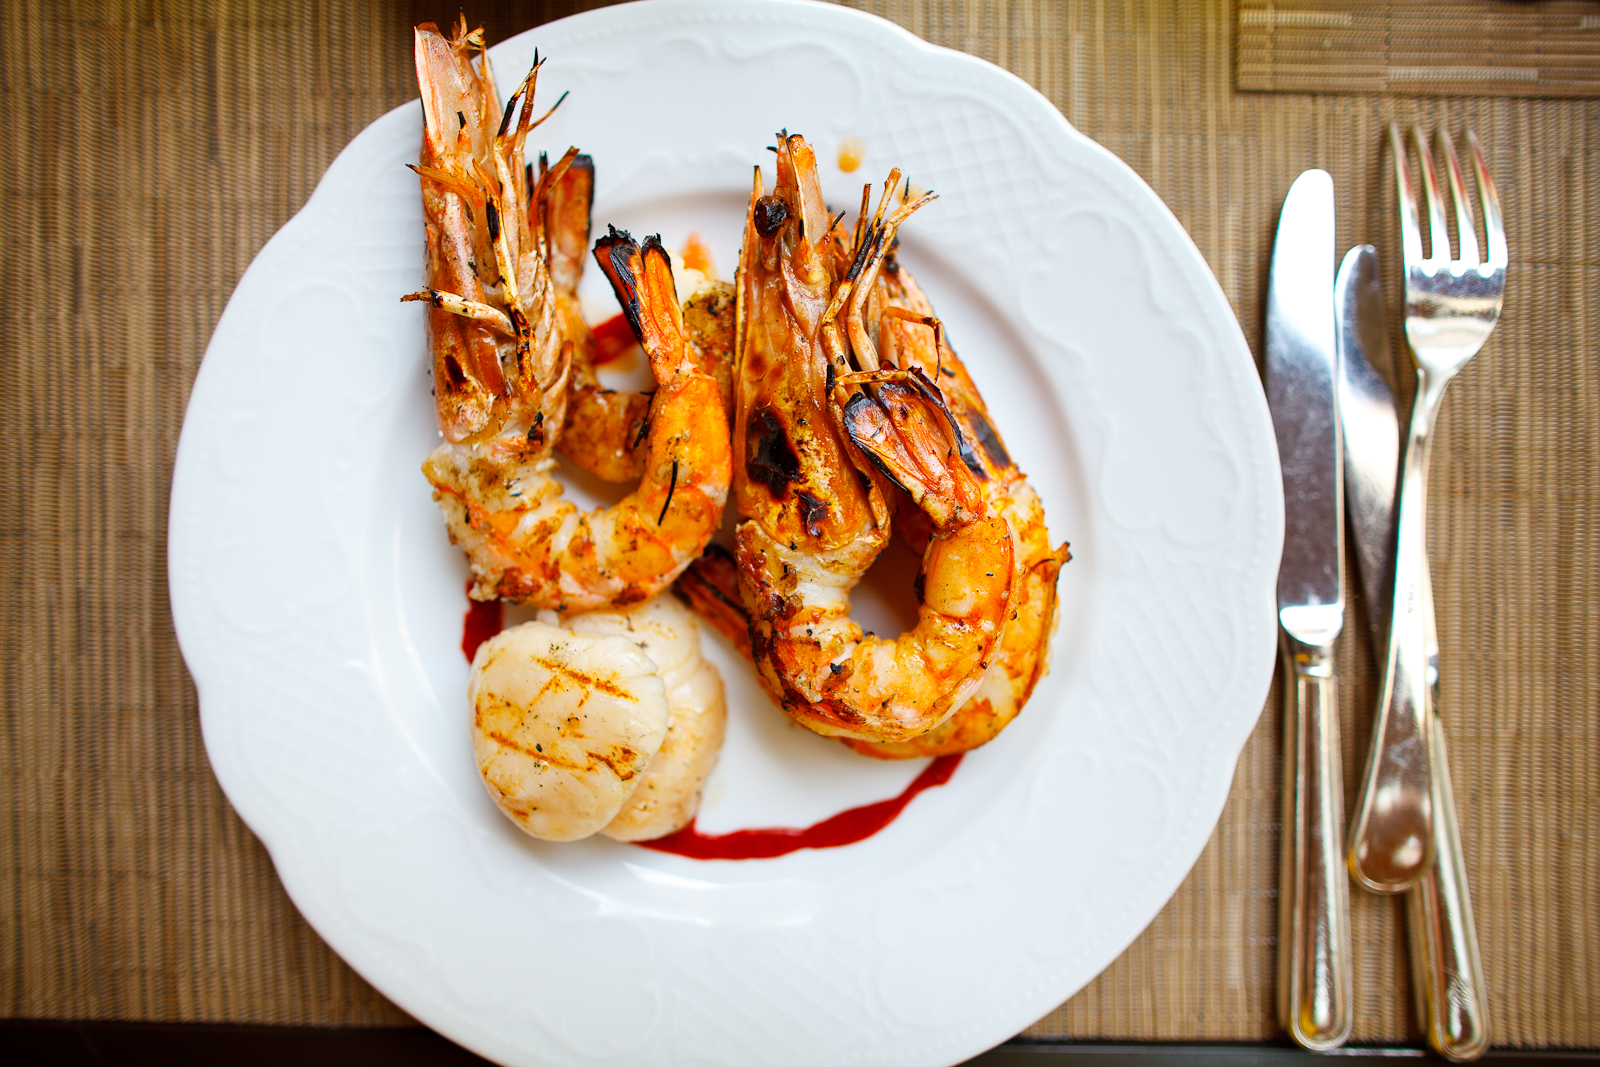 Grilled prawns with diver scallops